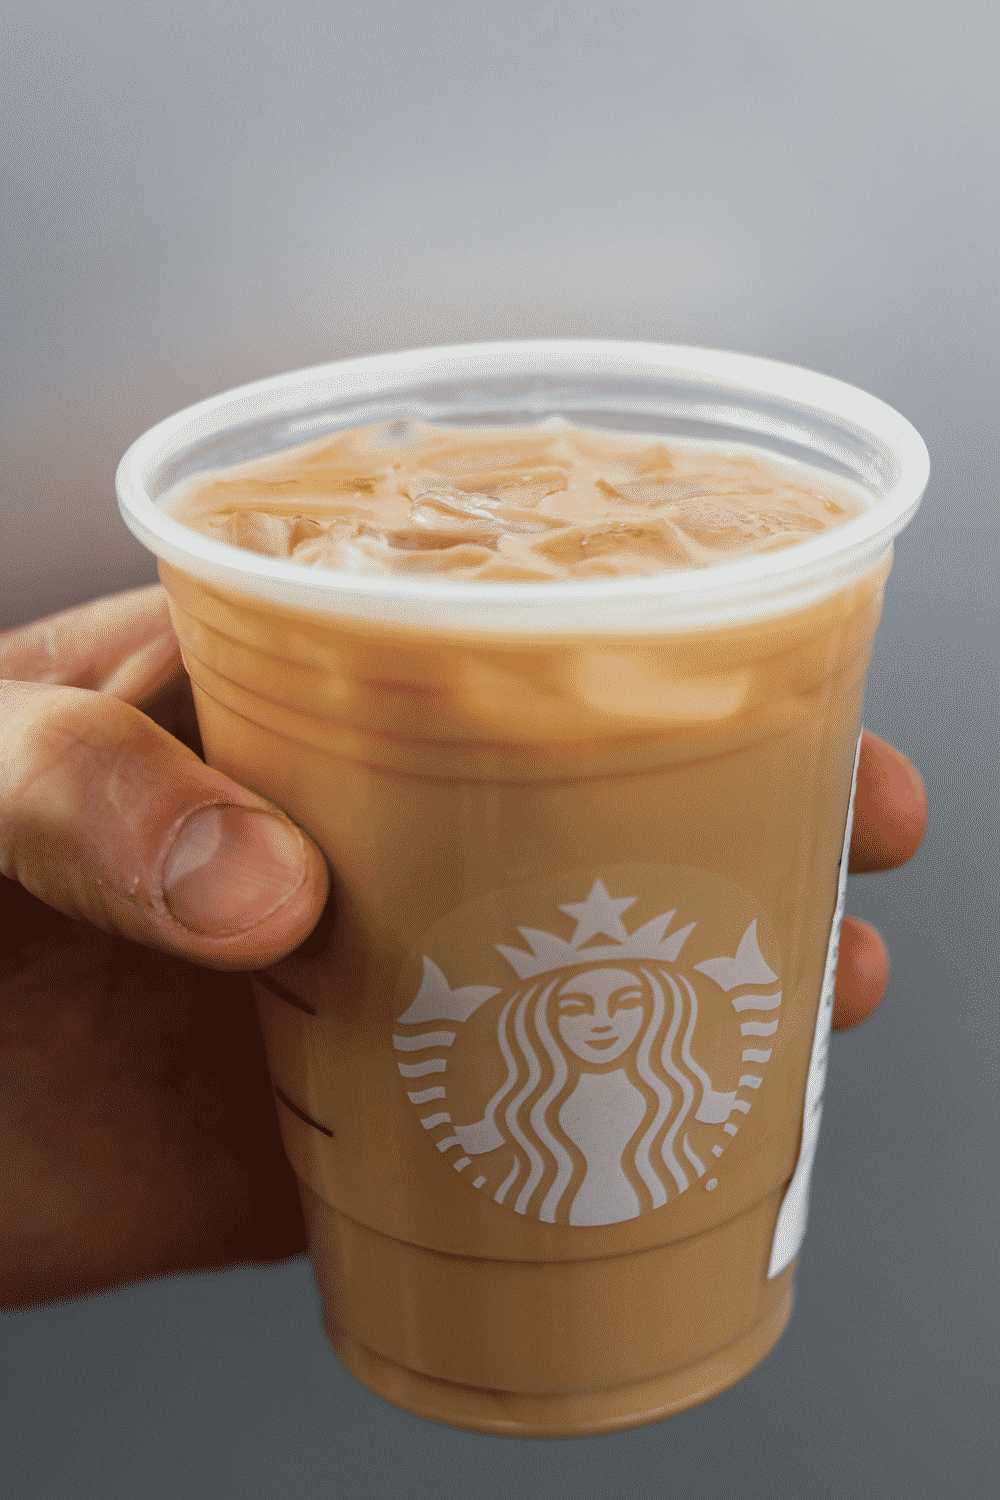 A hand holding a cup of Starbucks keto iced blonde vanilla latte.